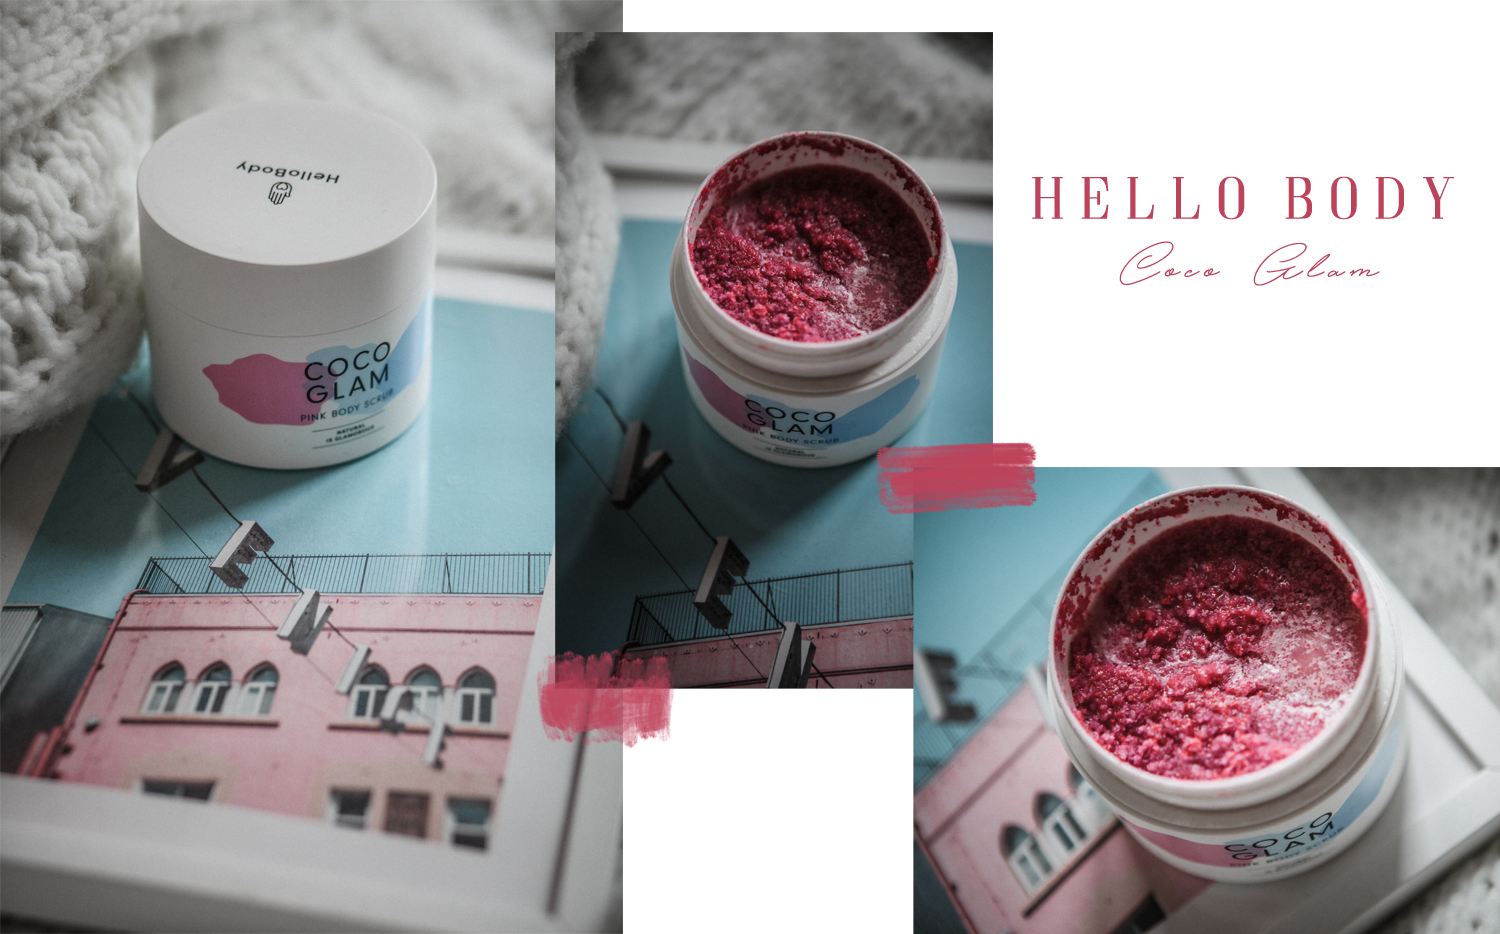 lauralamode-beauty-beautyblogger-blogger-hello body-bare minerals-benefit-annemarie börlind-loreal-rituals-revolution-beauty favorites-skincare-skin-pflege-berlin-munich